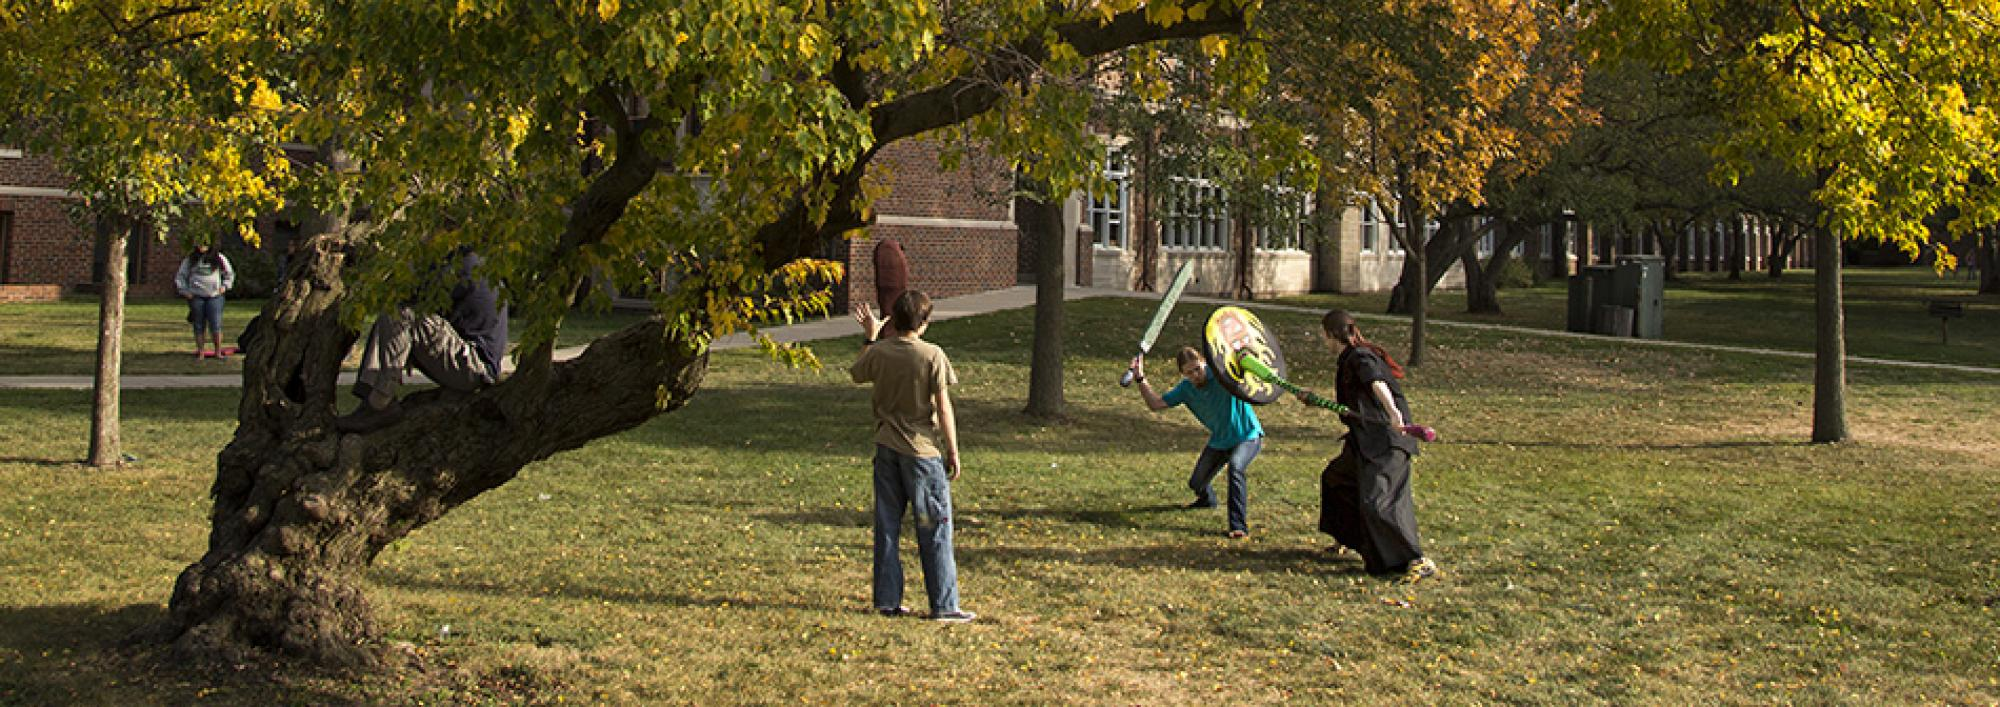 Students under the trees fight with foam weapons and shields